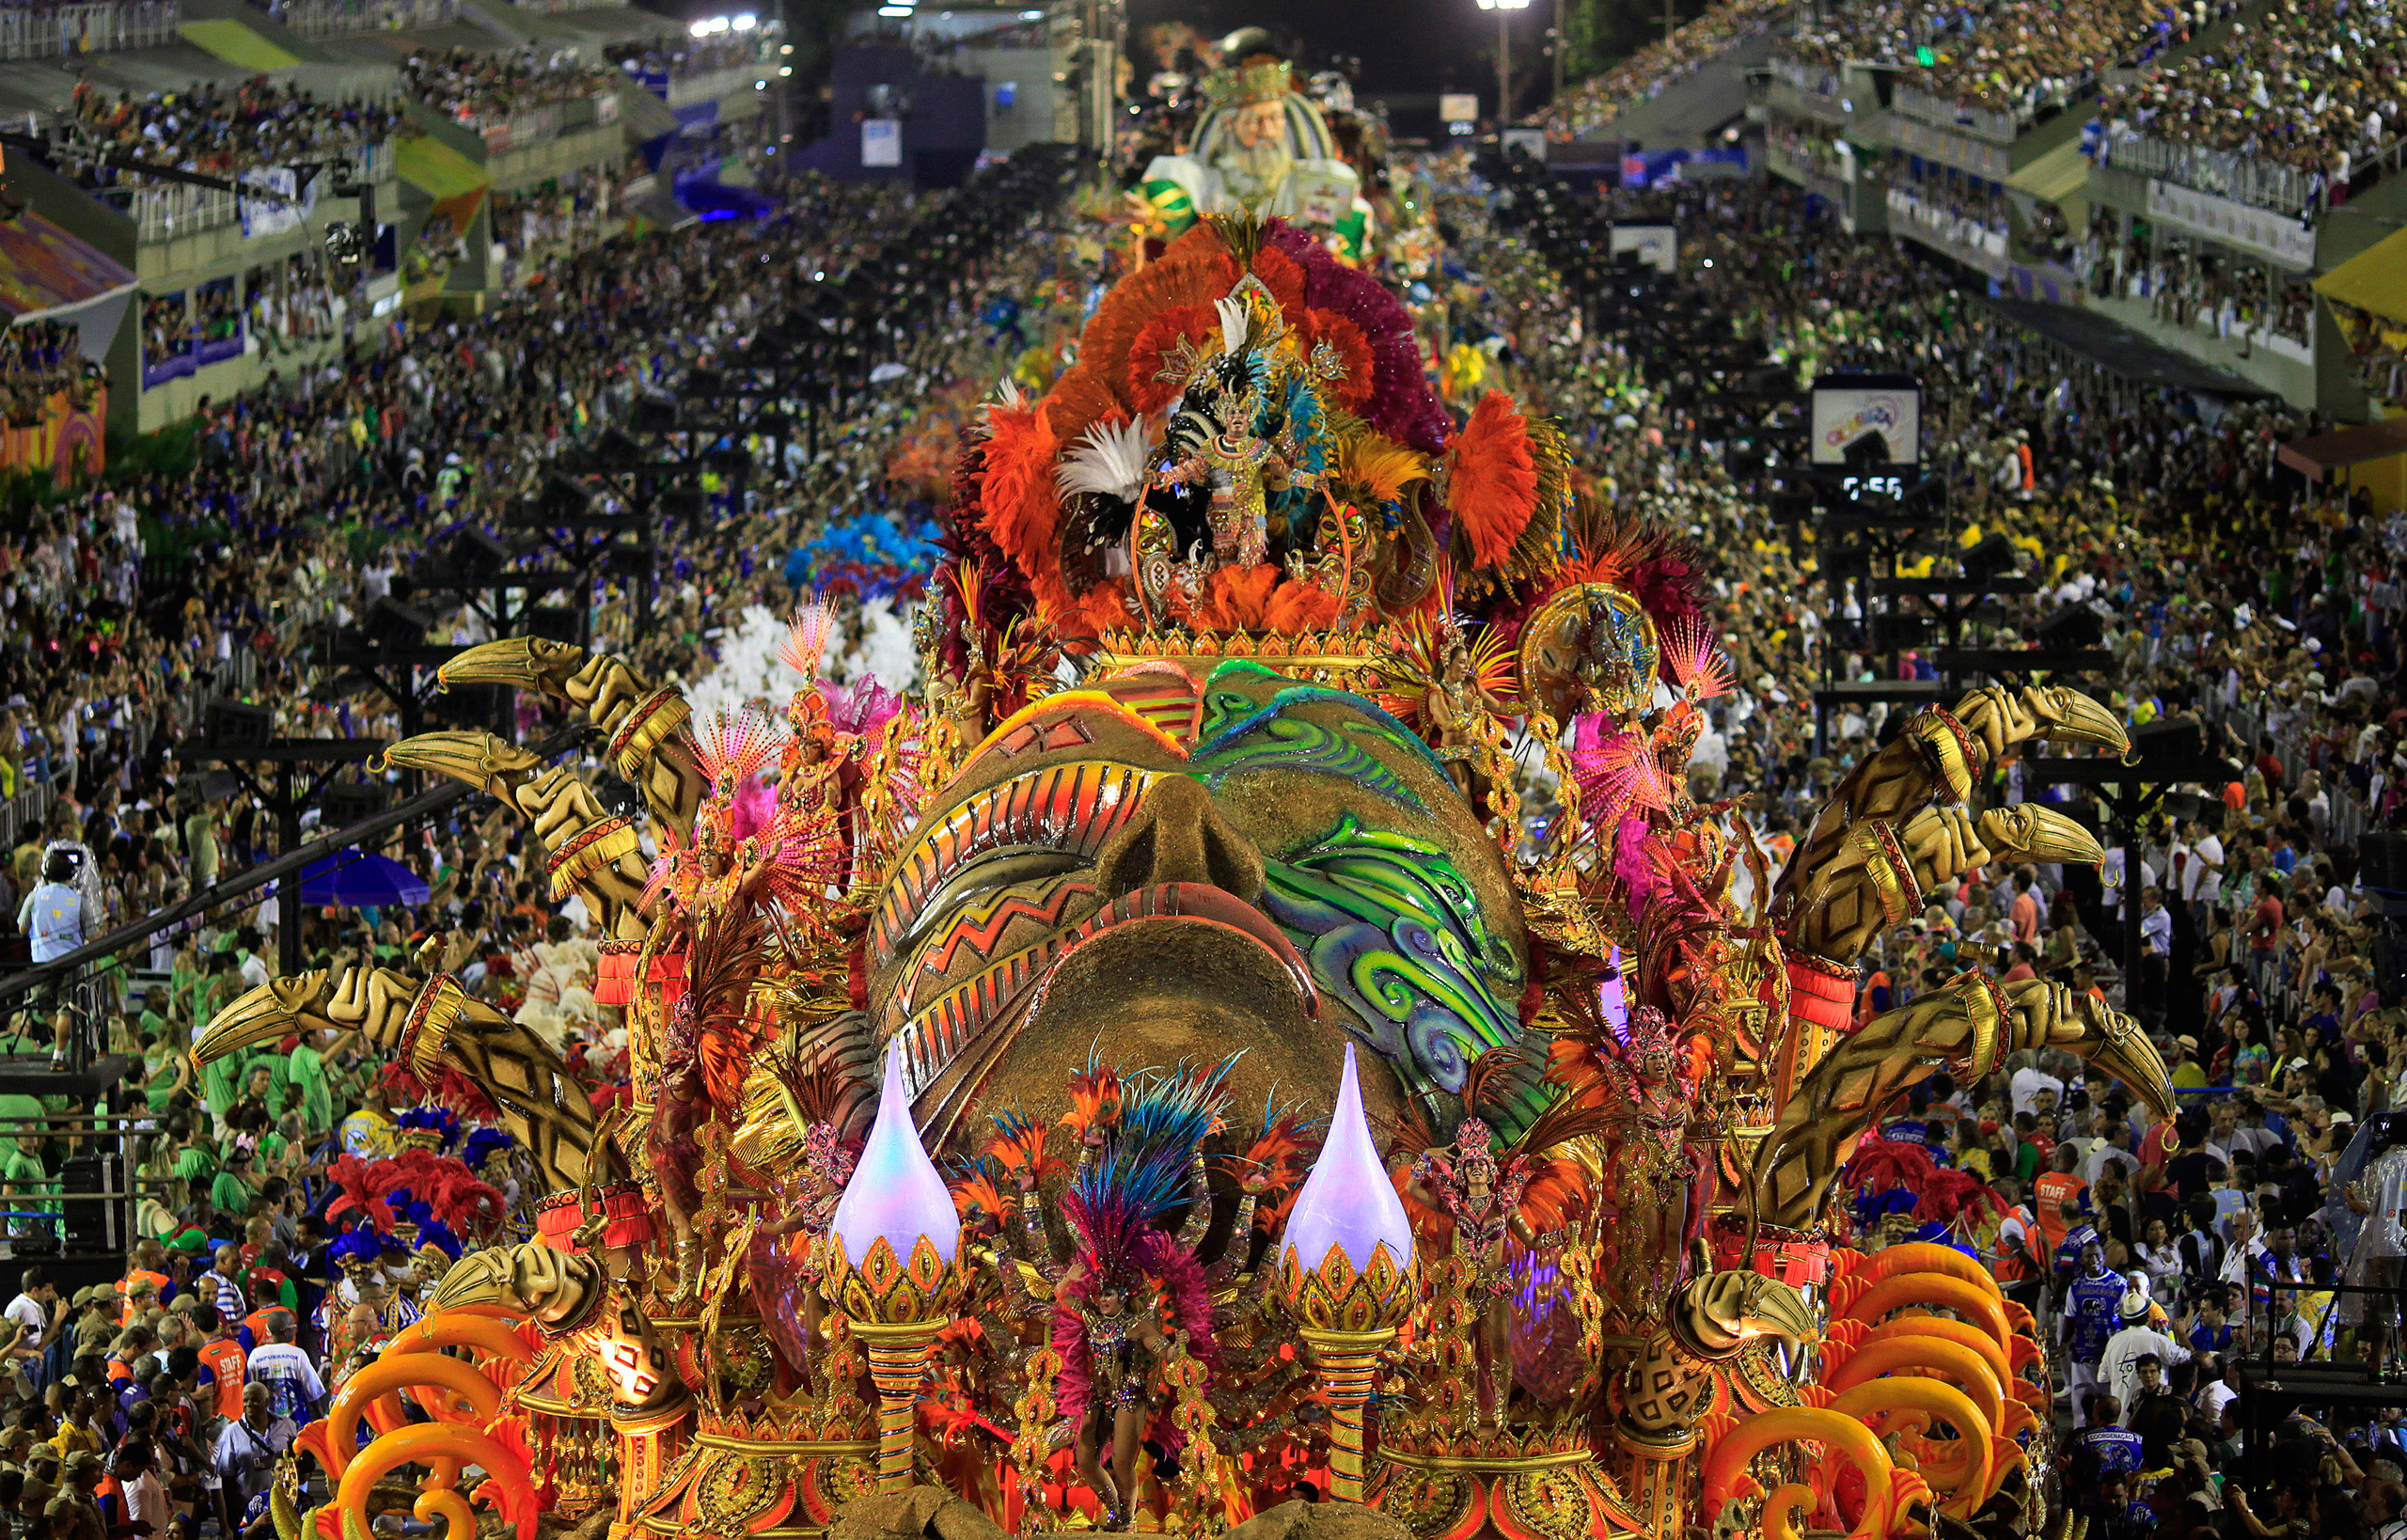 The Beija-Flor samba school parades during the Carnival in Rio de Janeiro on Feb. 17, 2015.